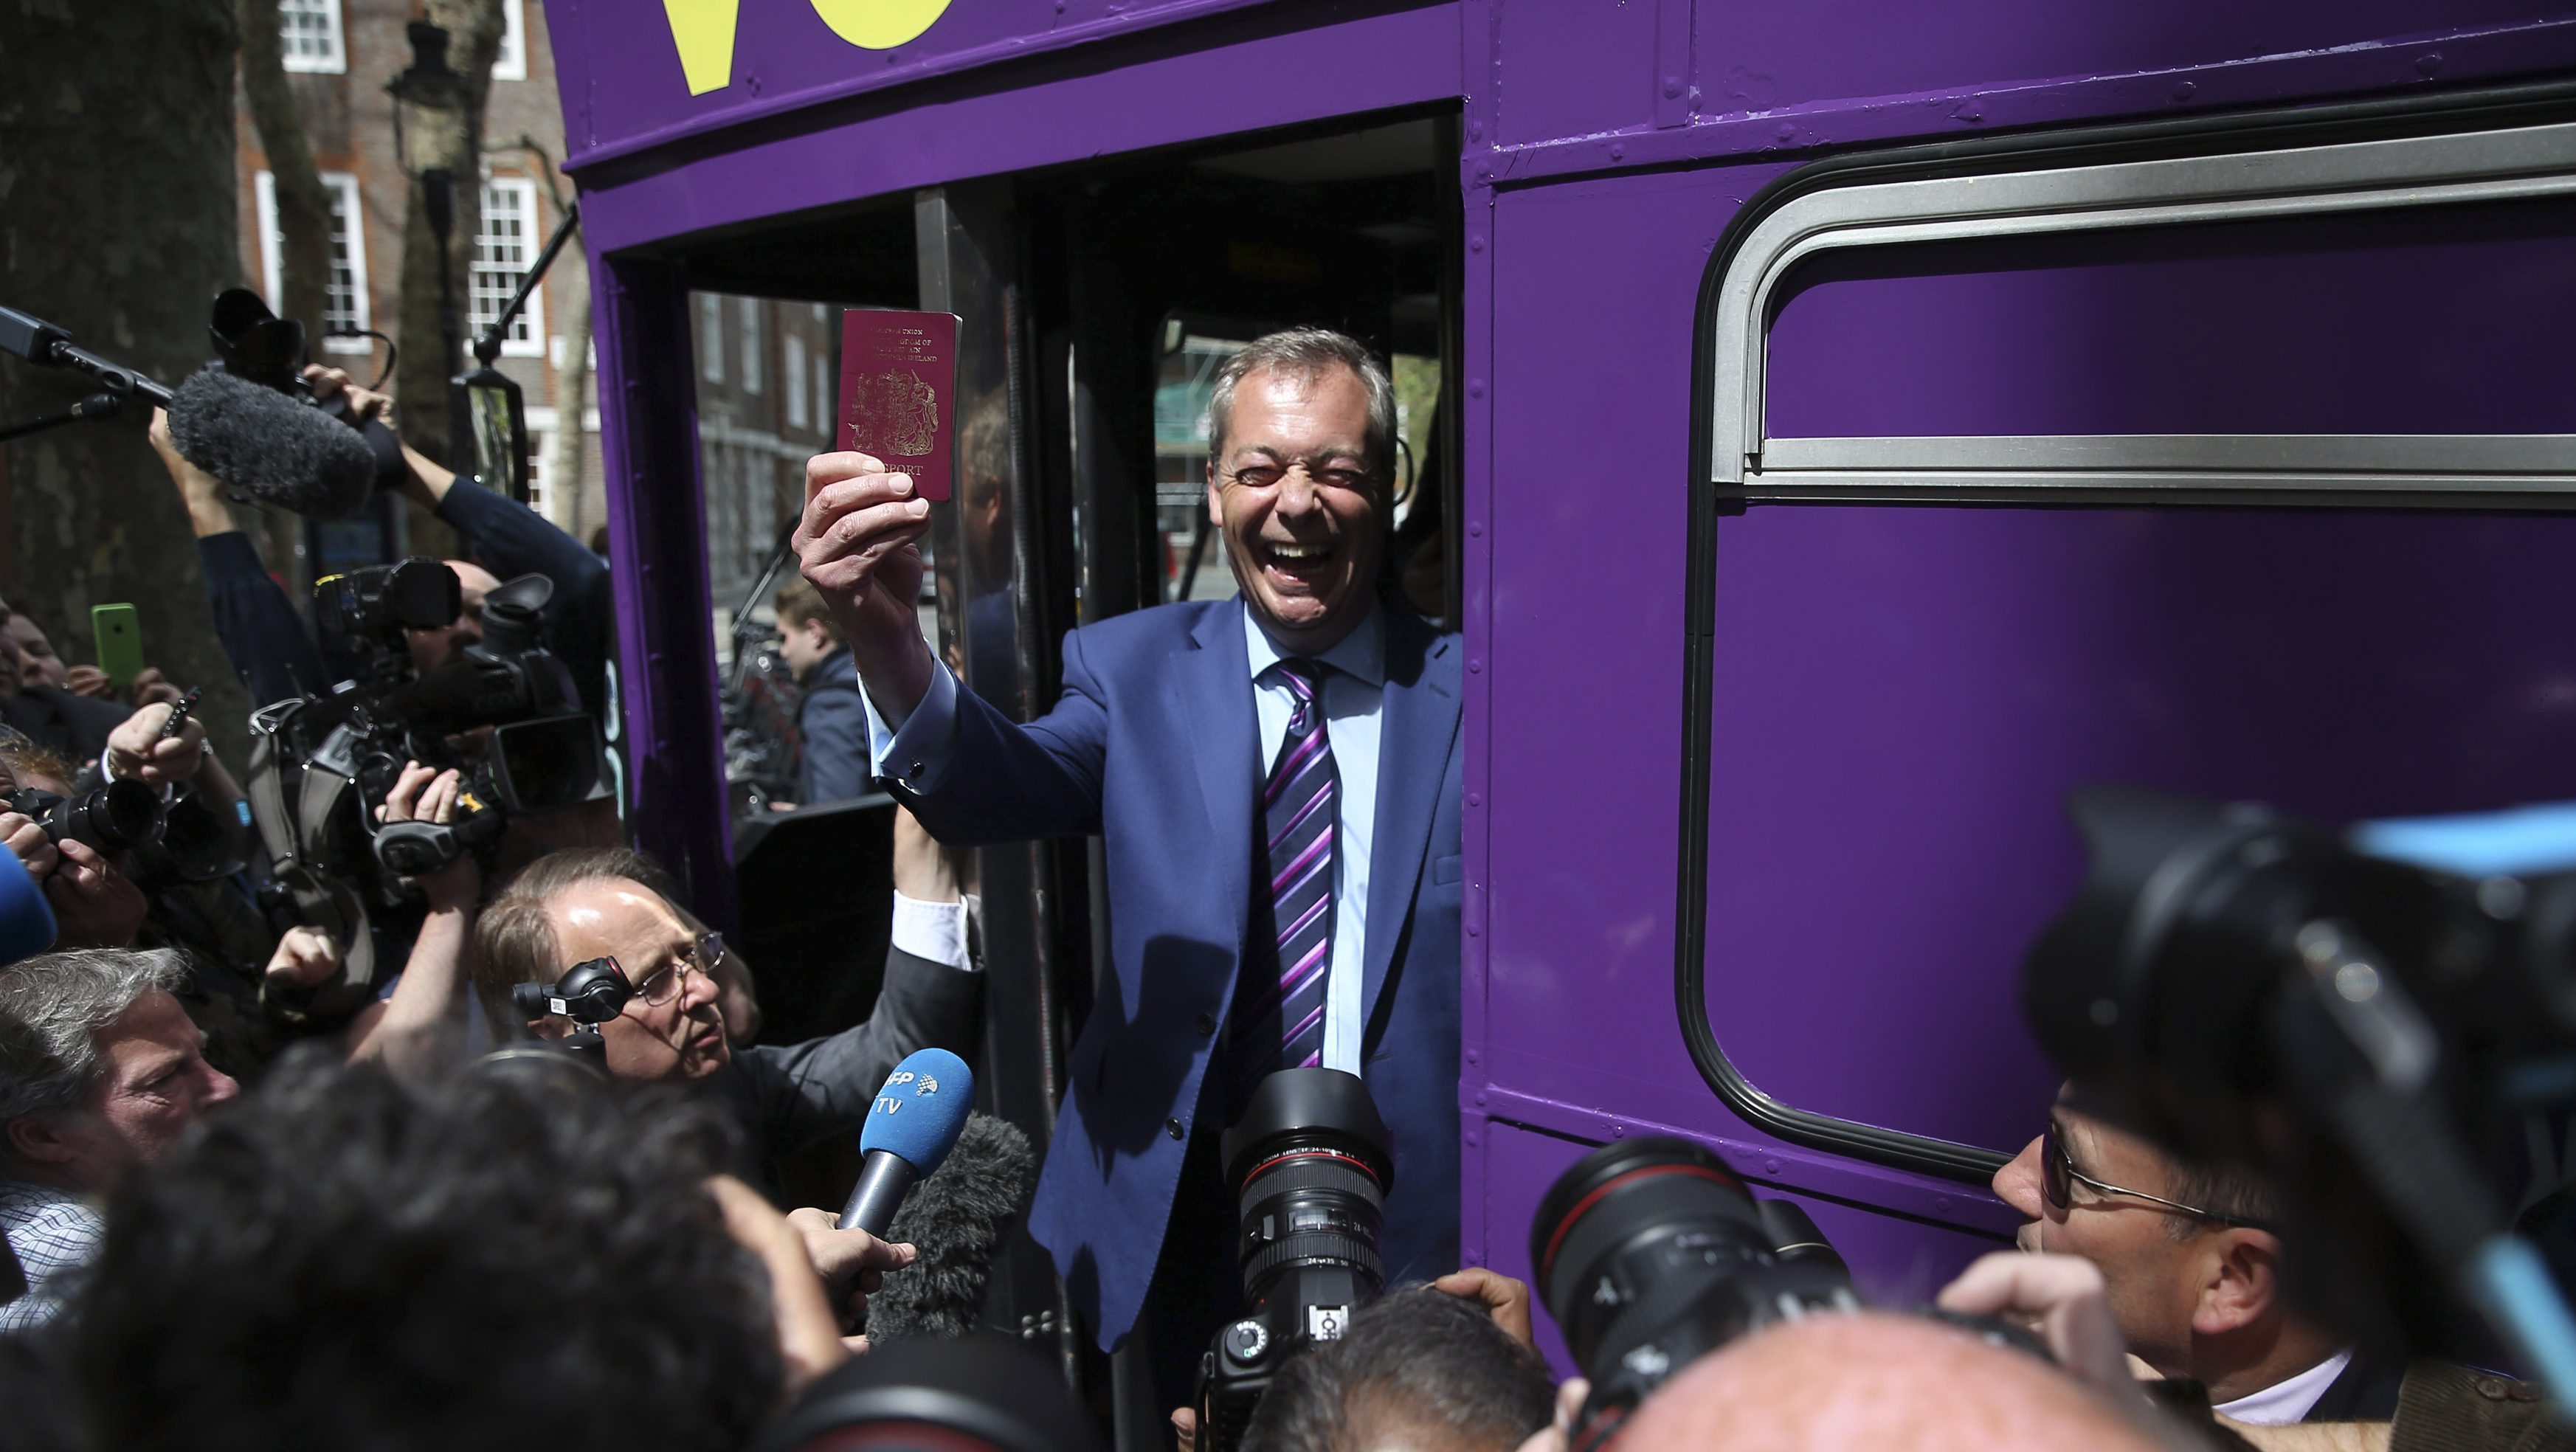 Leader of the United Kingdom Independence Party Nigel Farage holds his passport as he launches his party's EU referendum tour bus in London